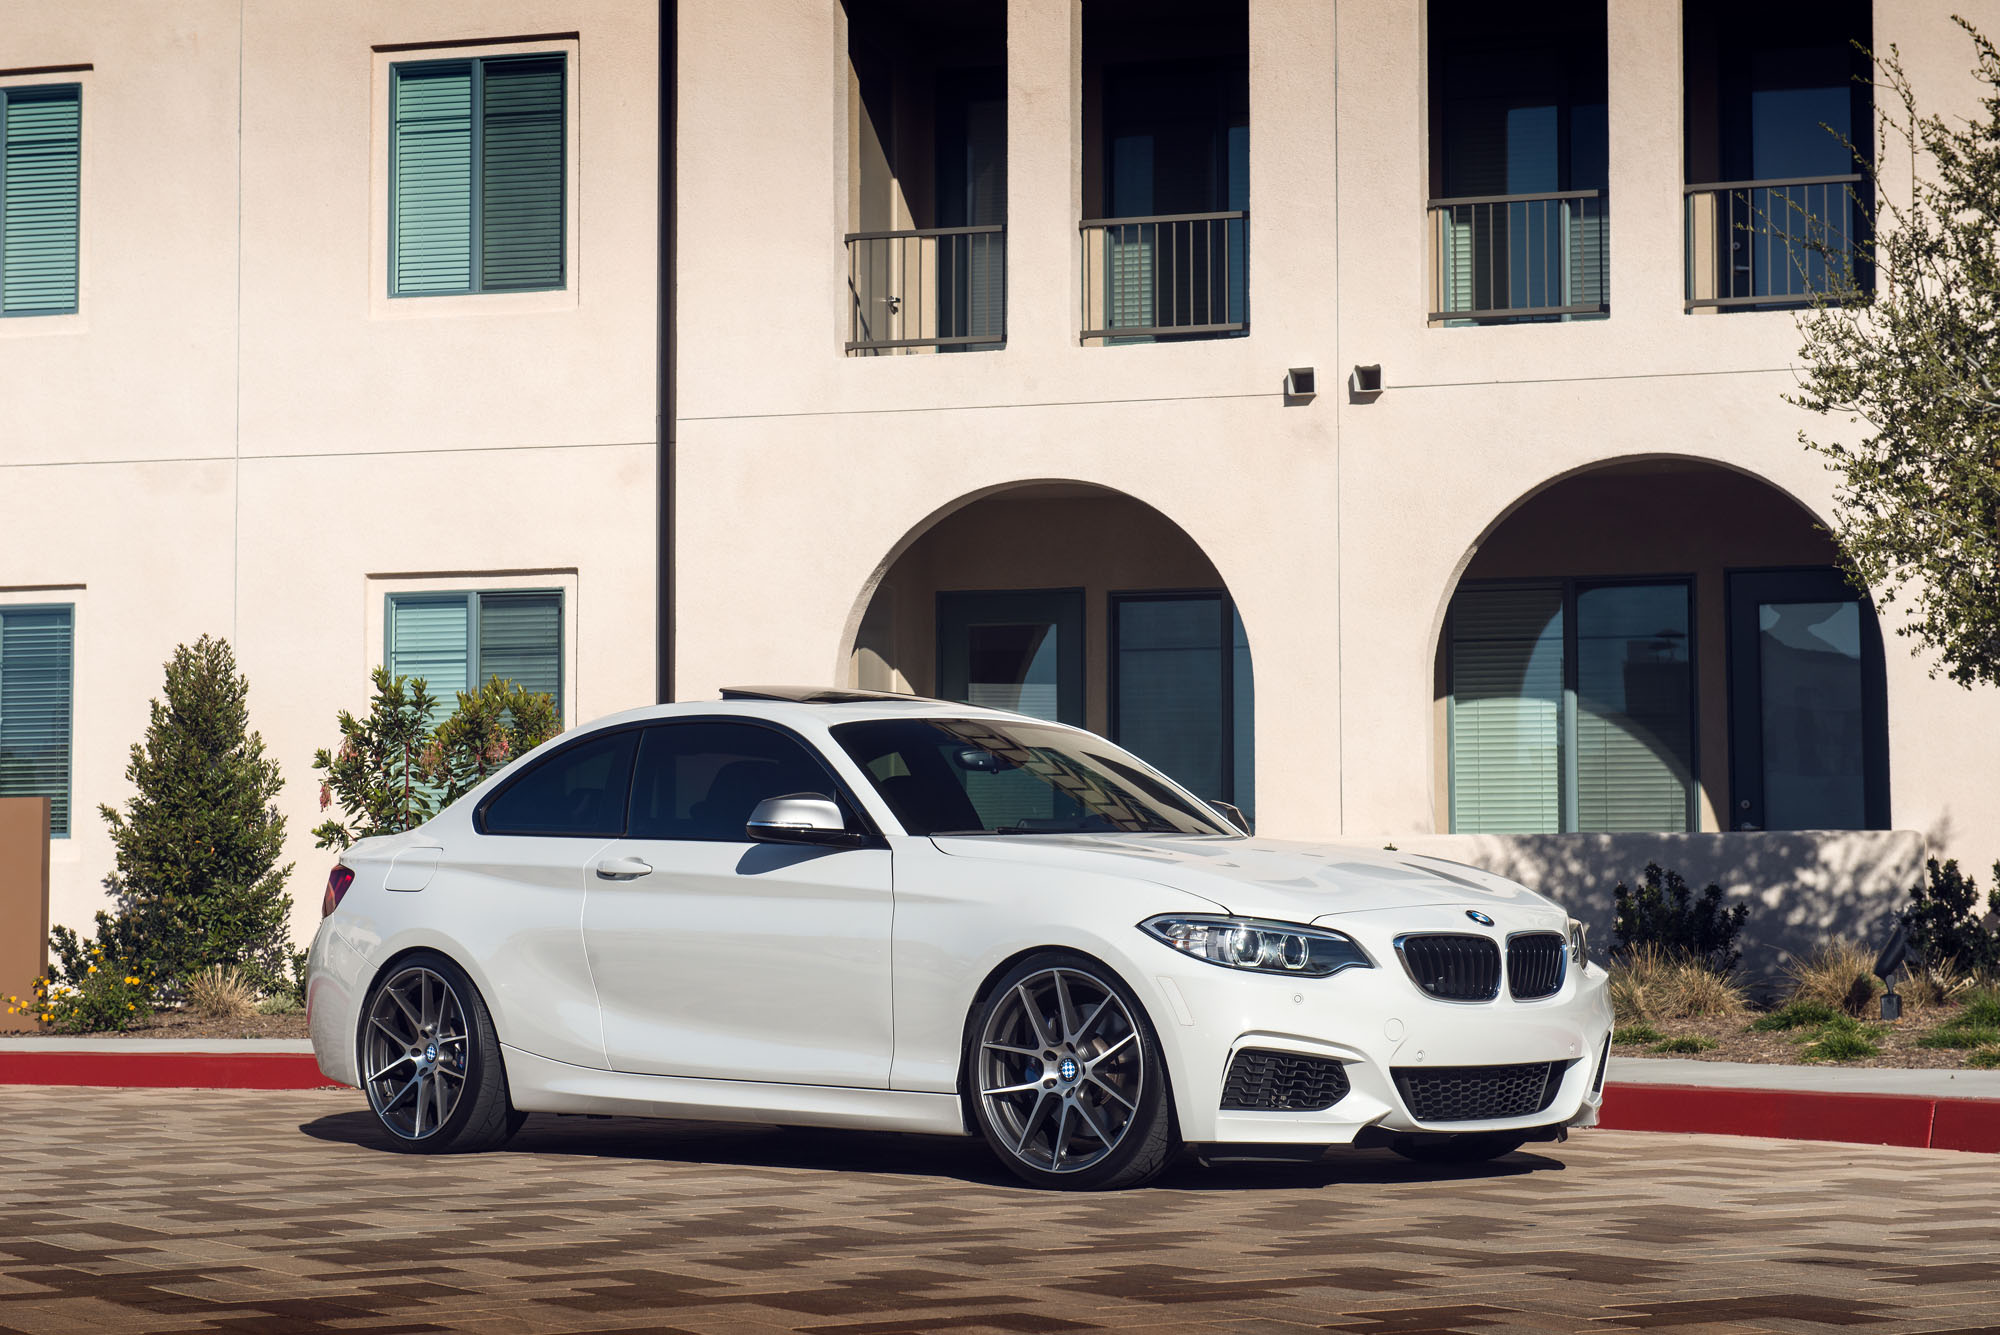 Aftermarket Bmw Wheels Showroom Beyern Wheels